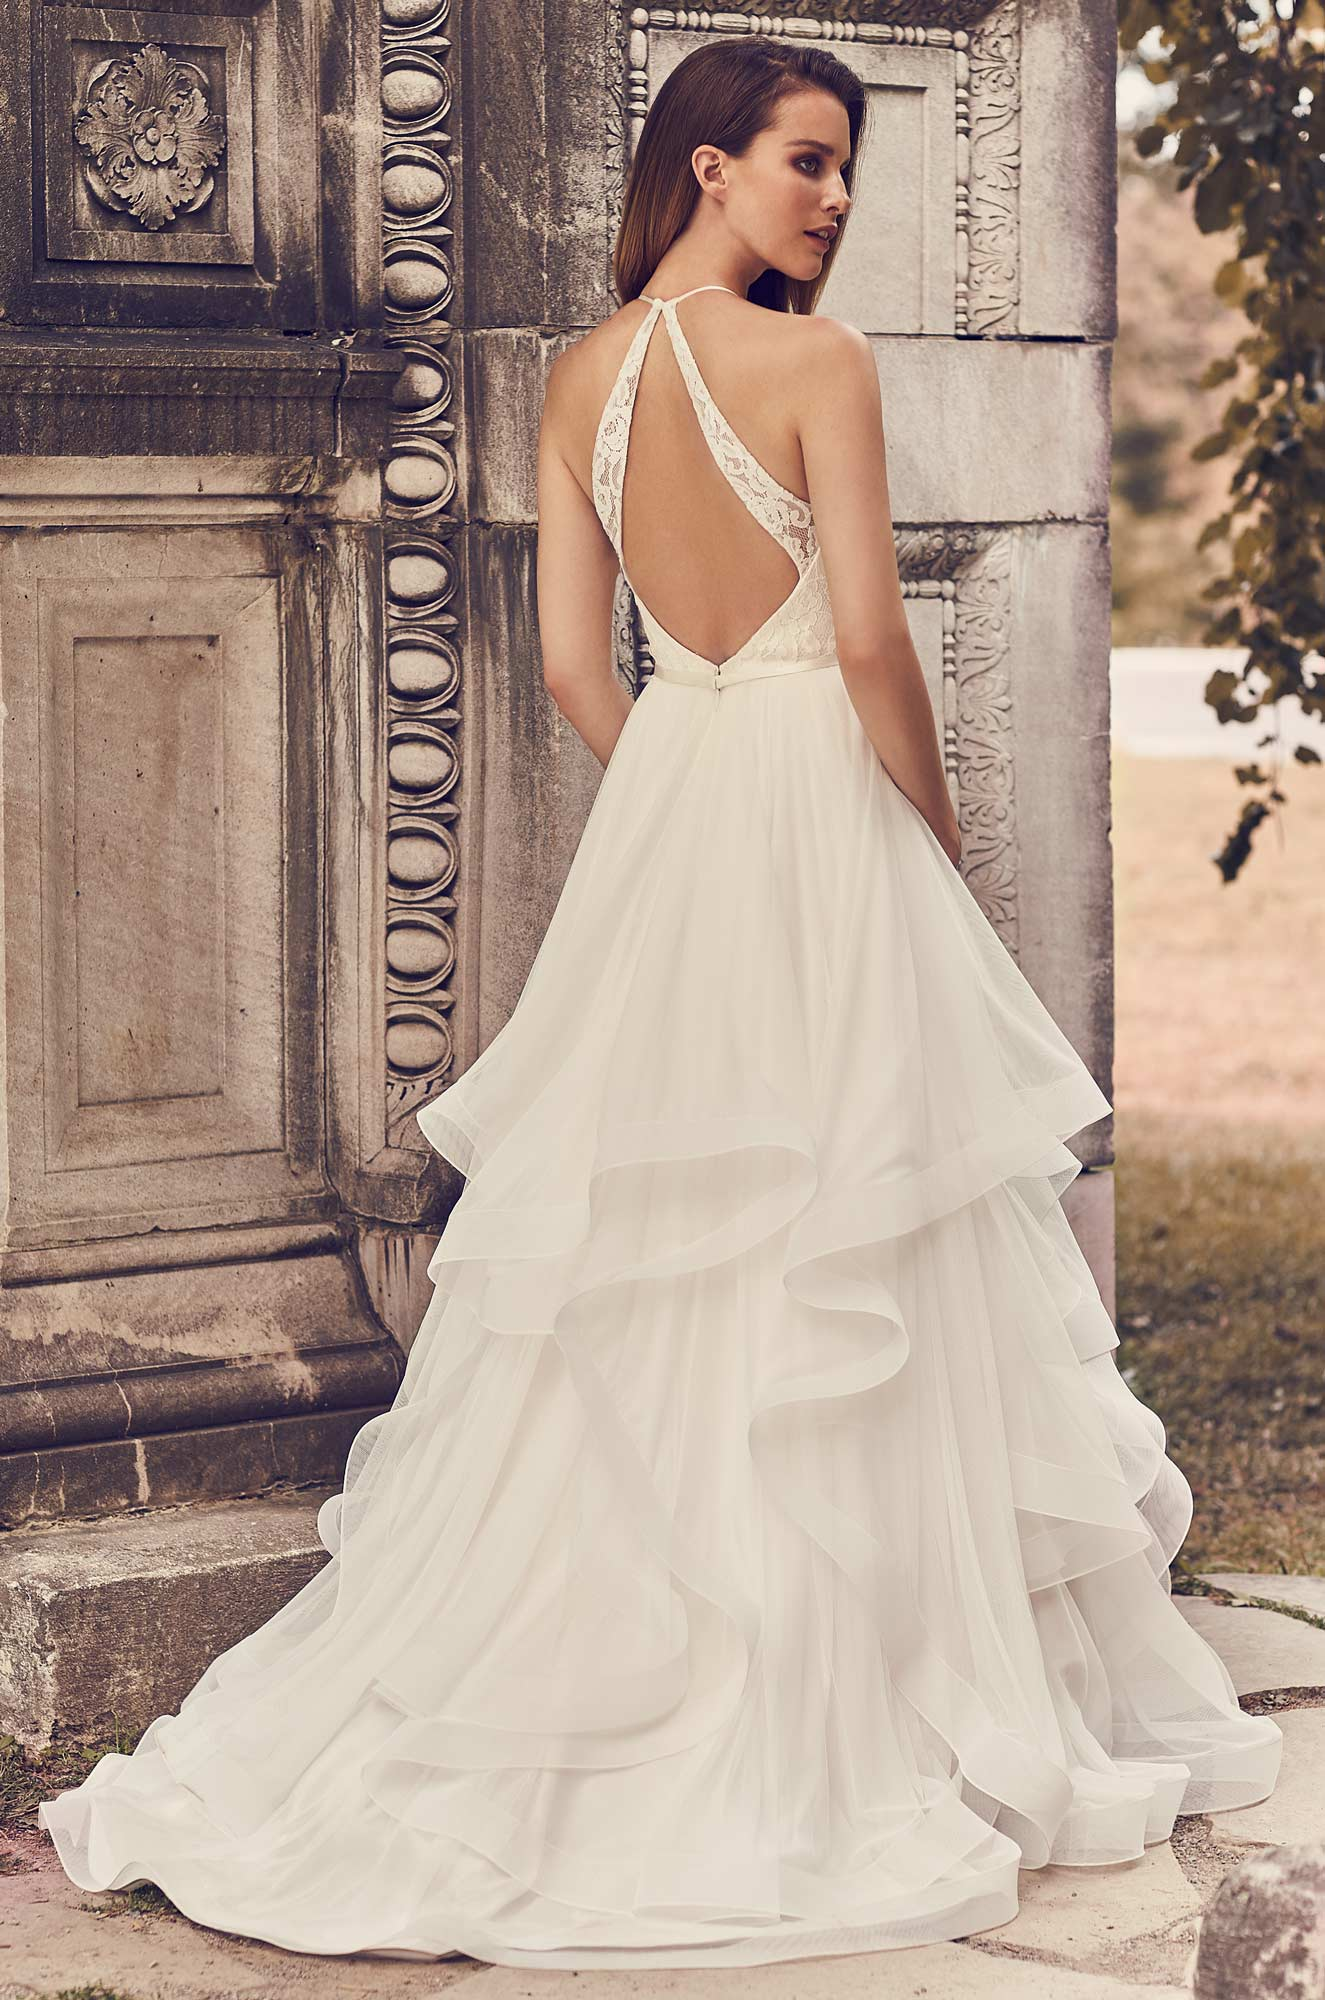 Tulle Skirt Halter Neckline Wedding Dress - Style #2241 | Mikaella Bridal